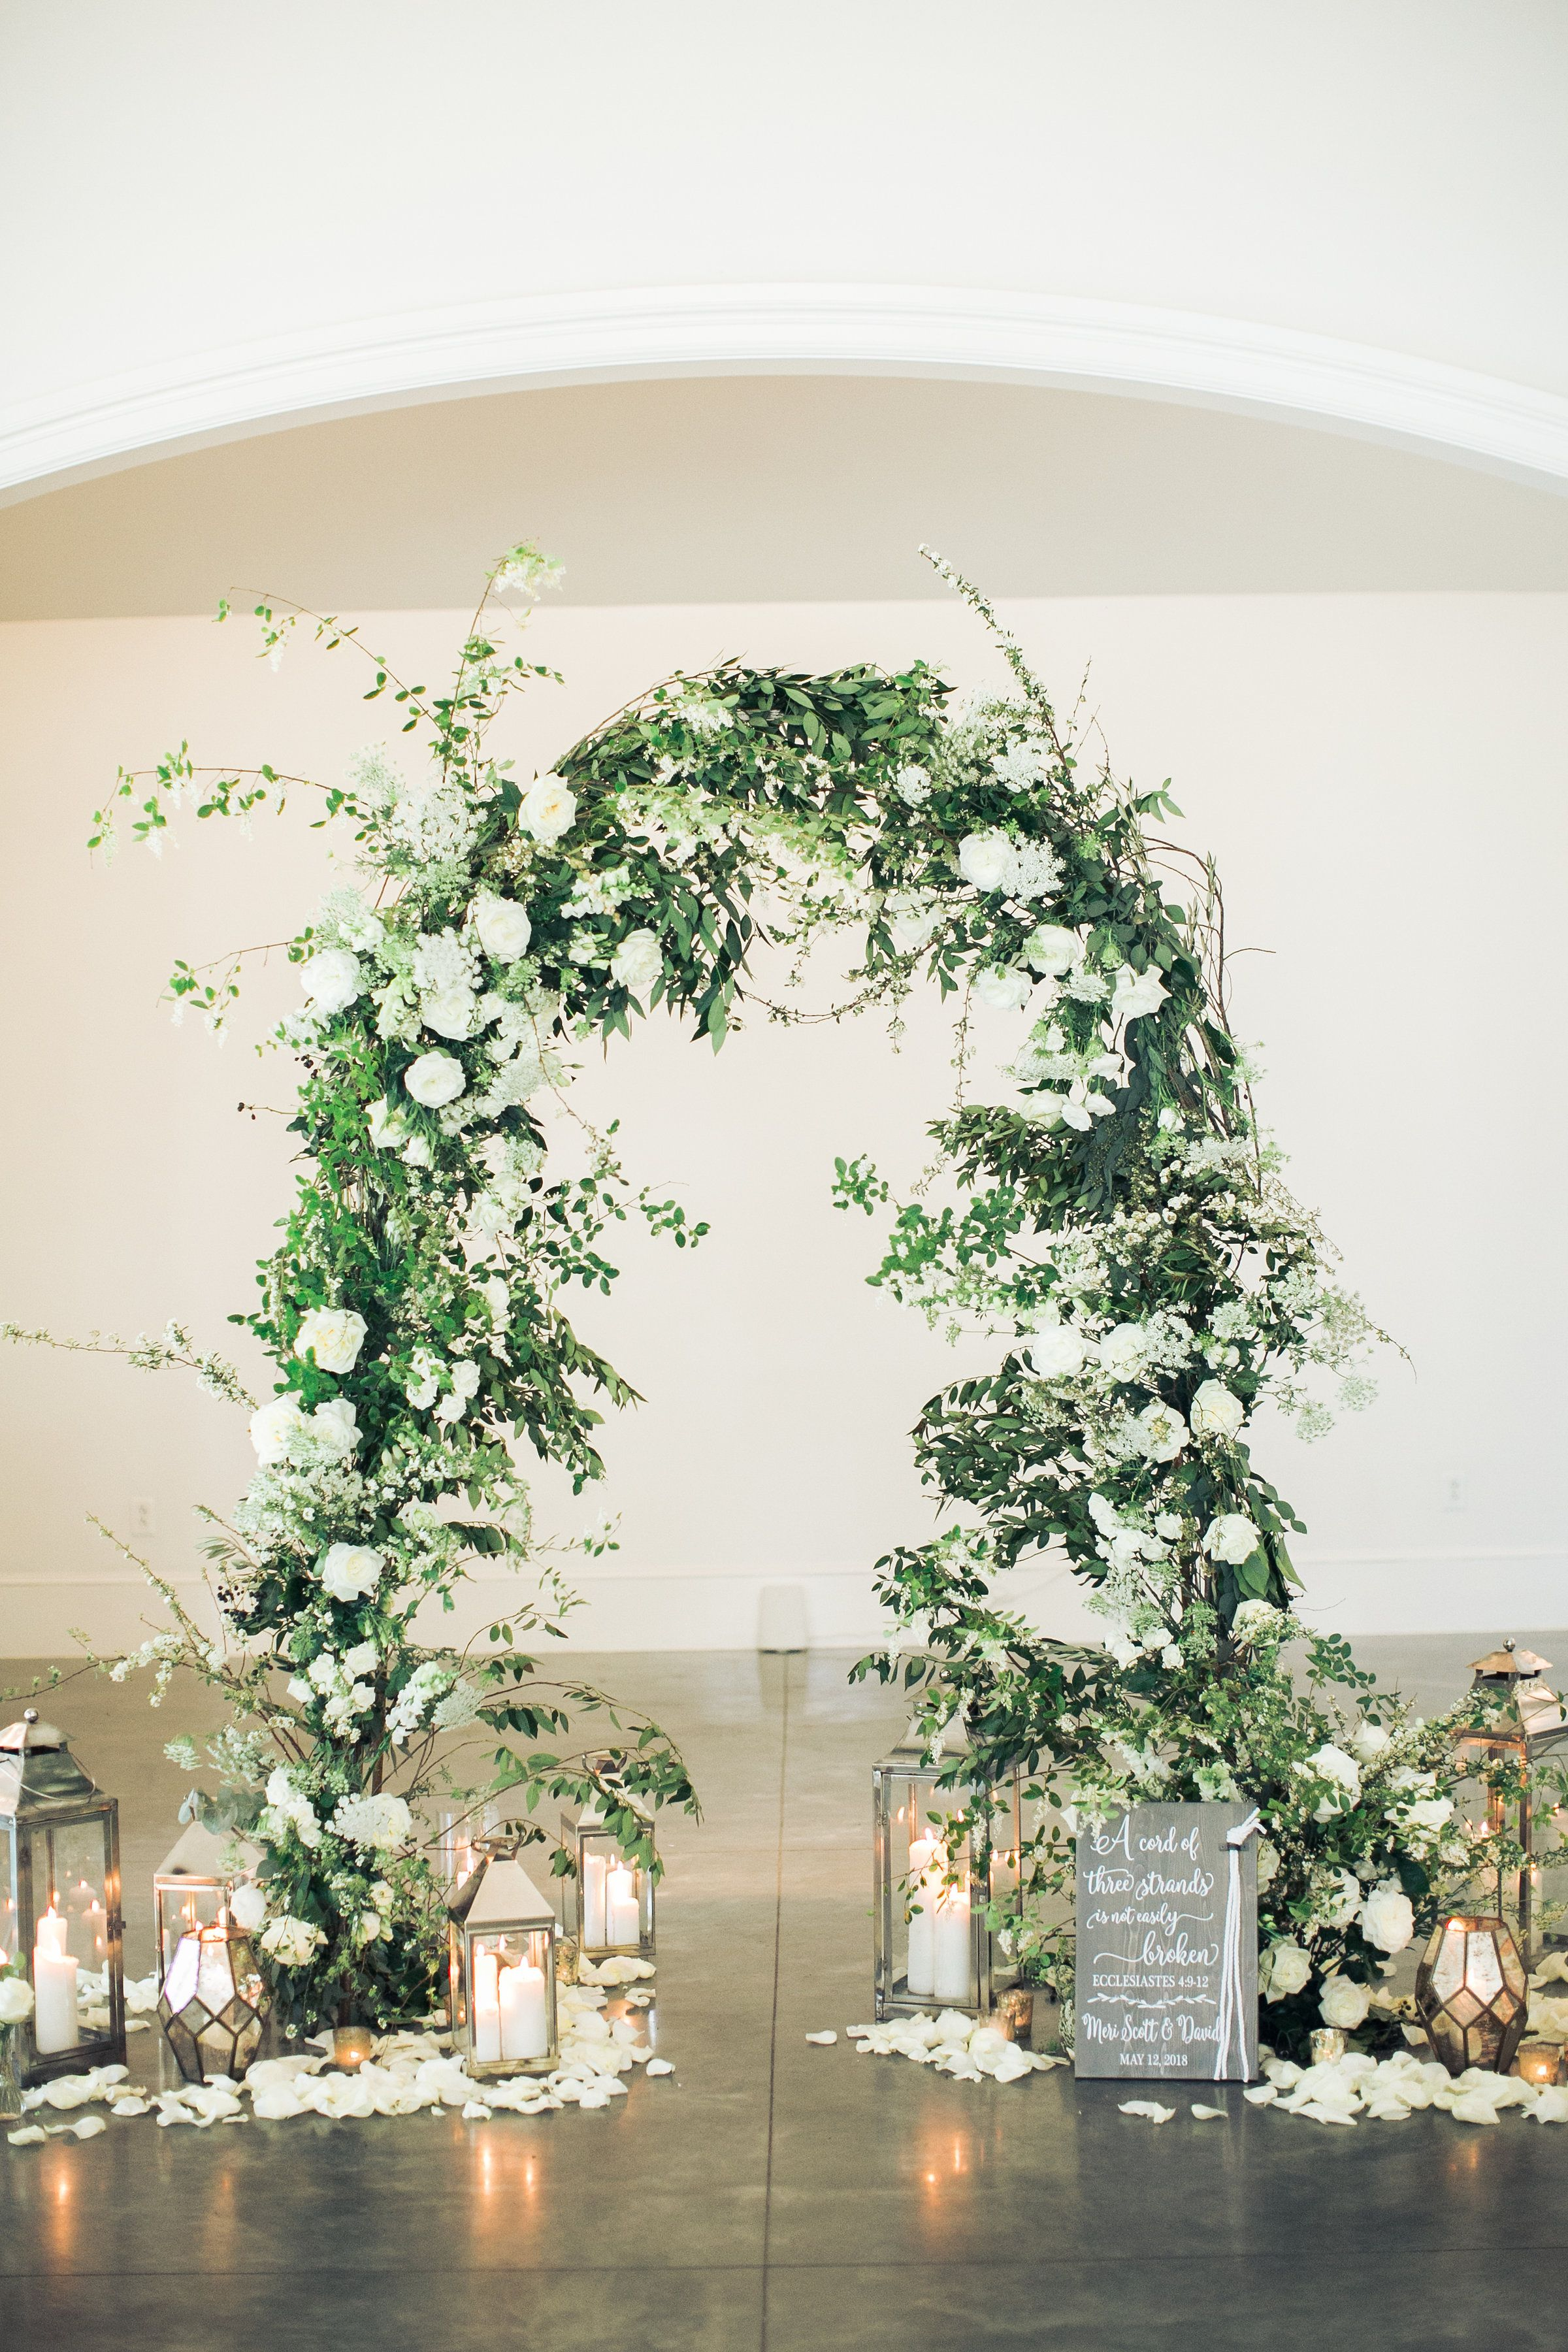 Ceremony Arch With Branches And White Flowers Surrounded By Lanterns Candles And Vintage Wedding Arches Wedding Ceremony Flowers Wedding Ceremony Decorations